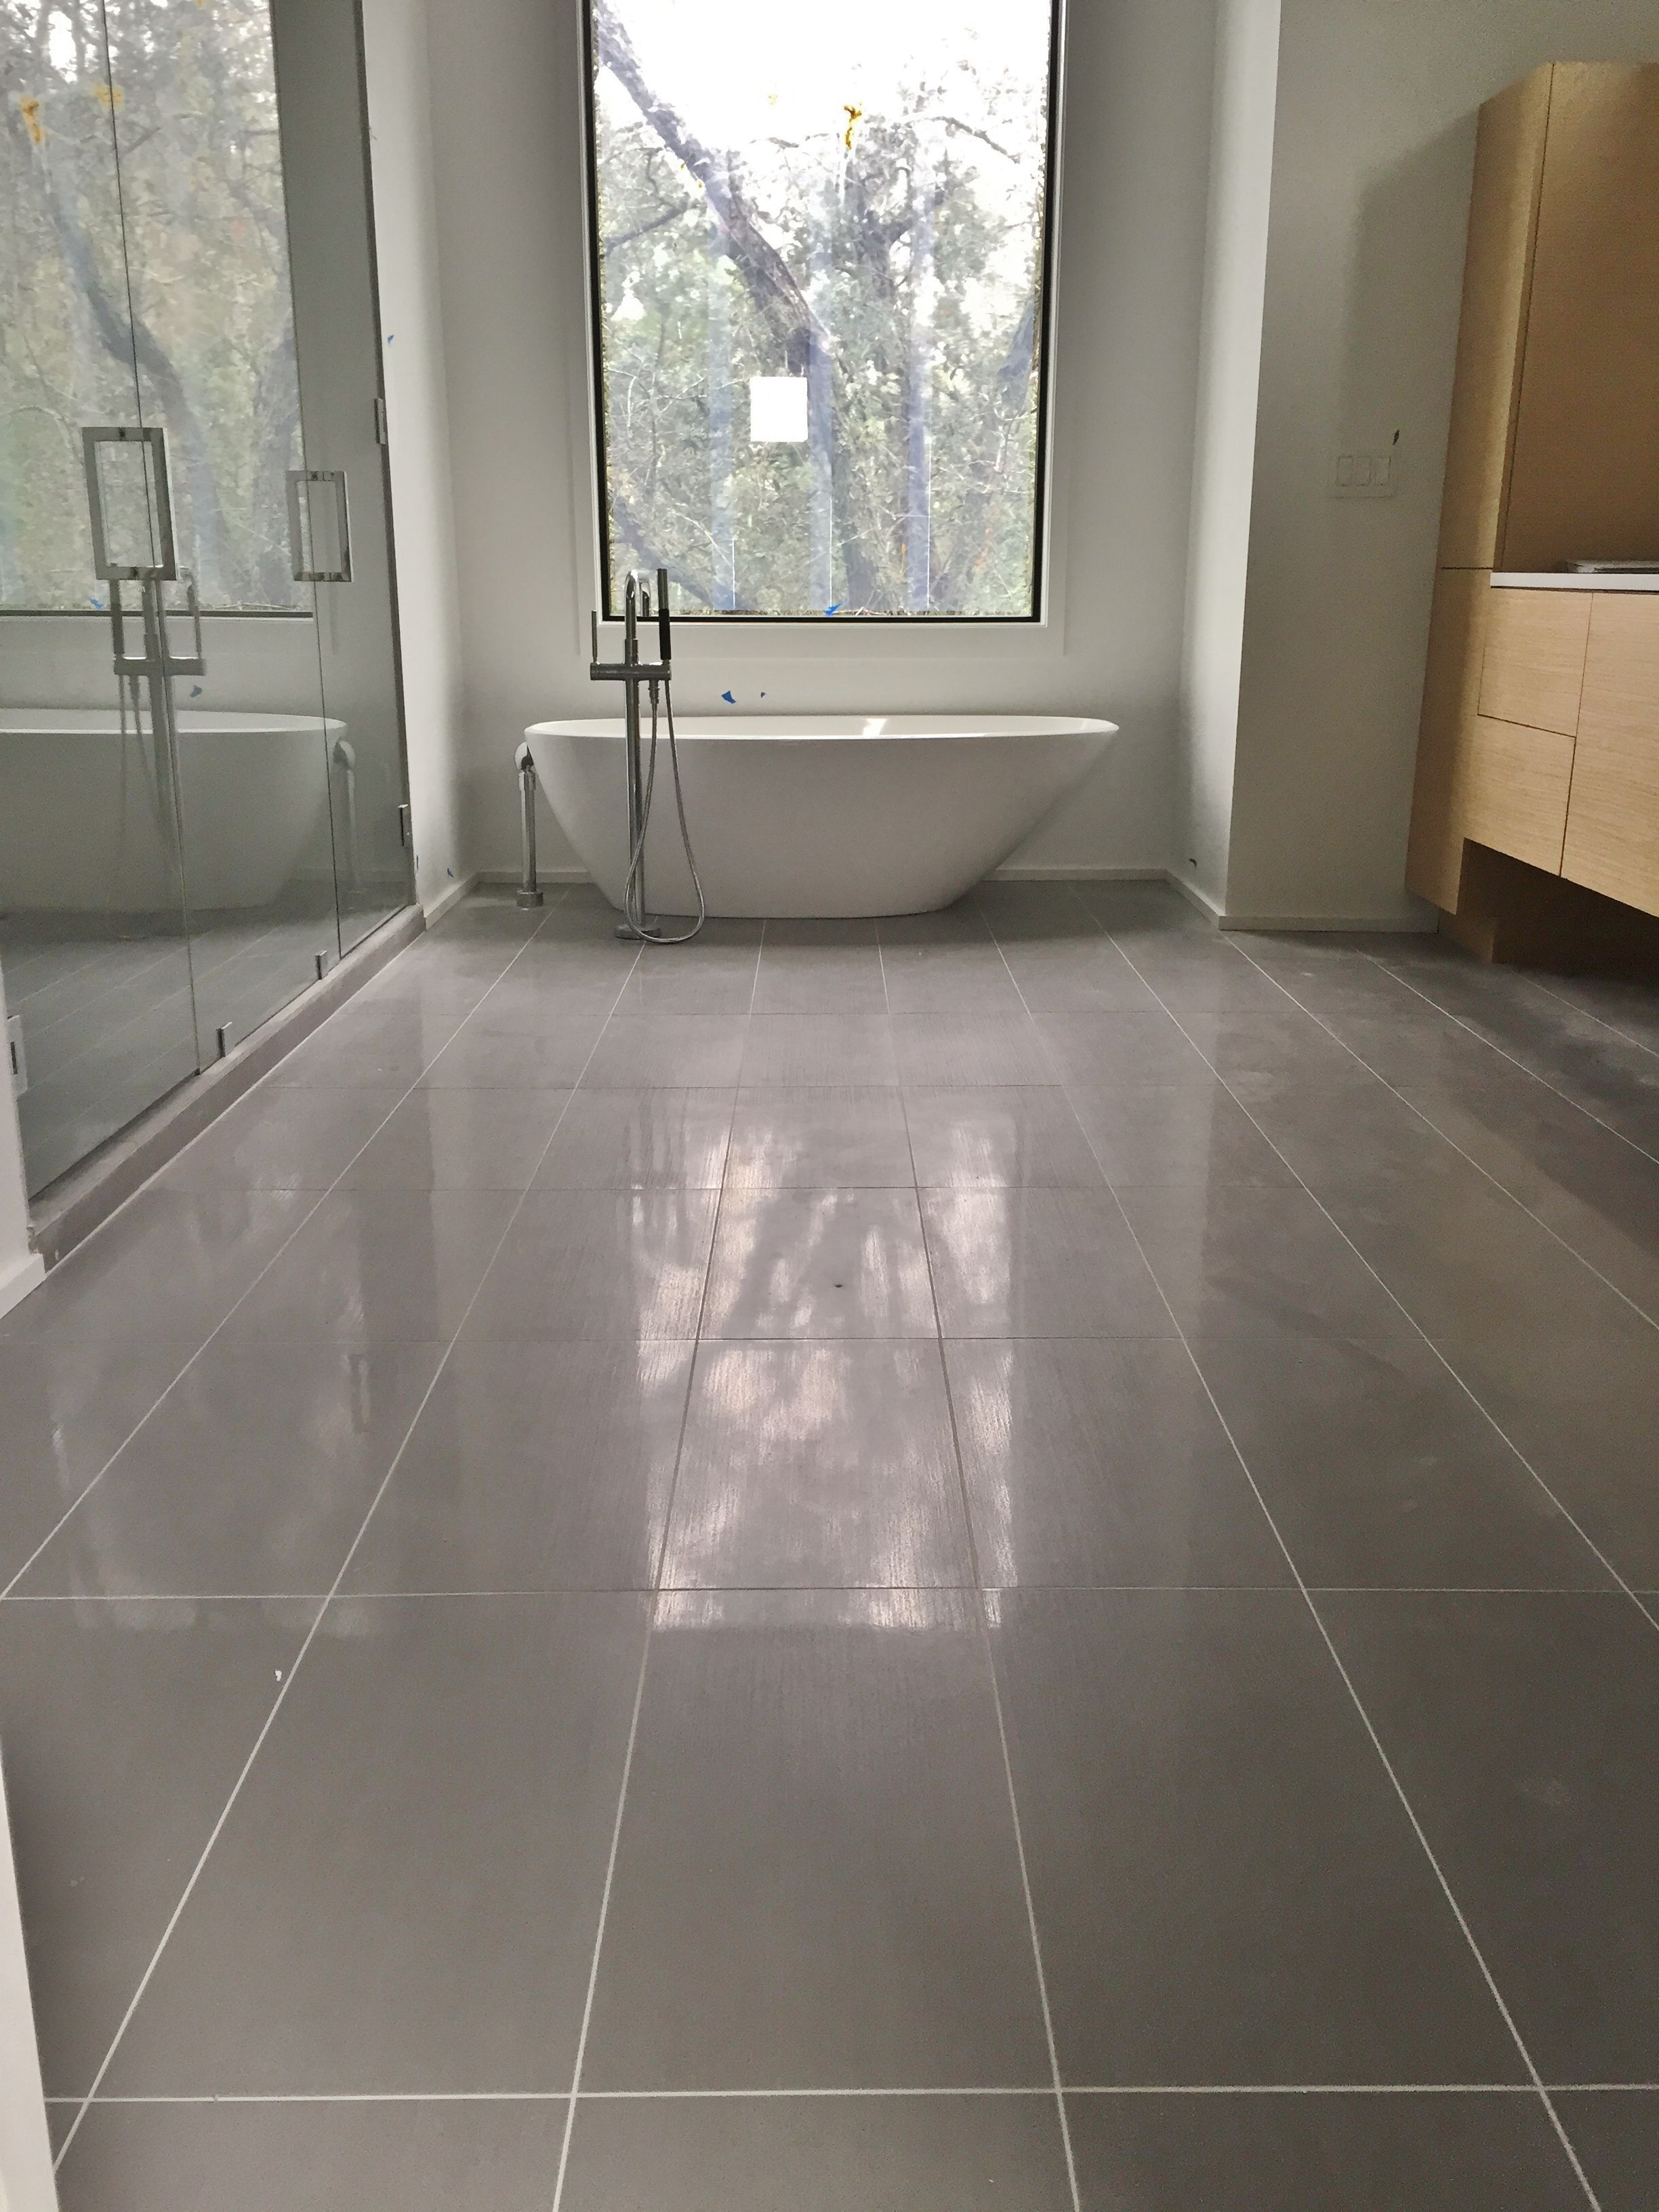 12x24 Porcelain Tile On Master Bathroom Floor  Tile Jobs